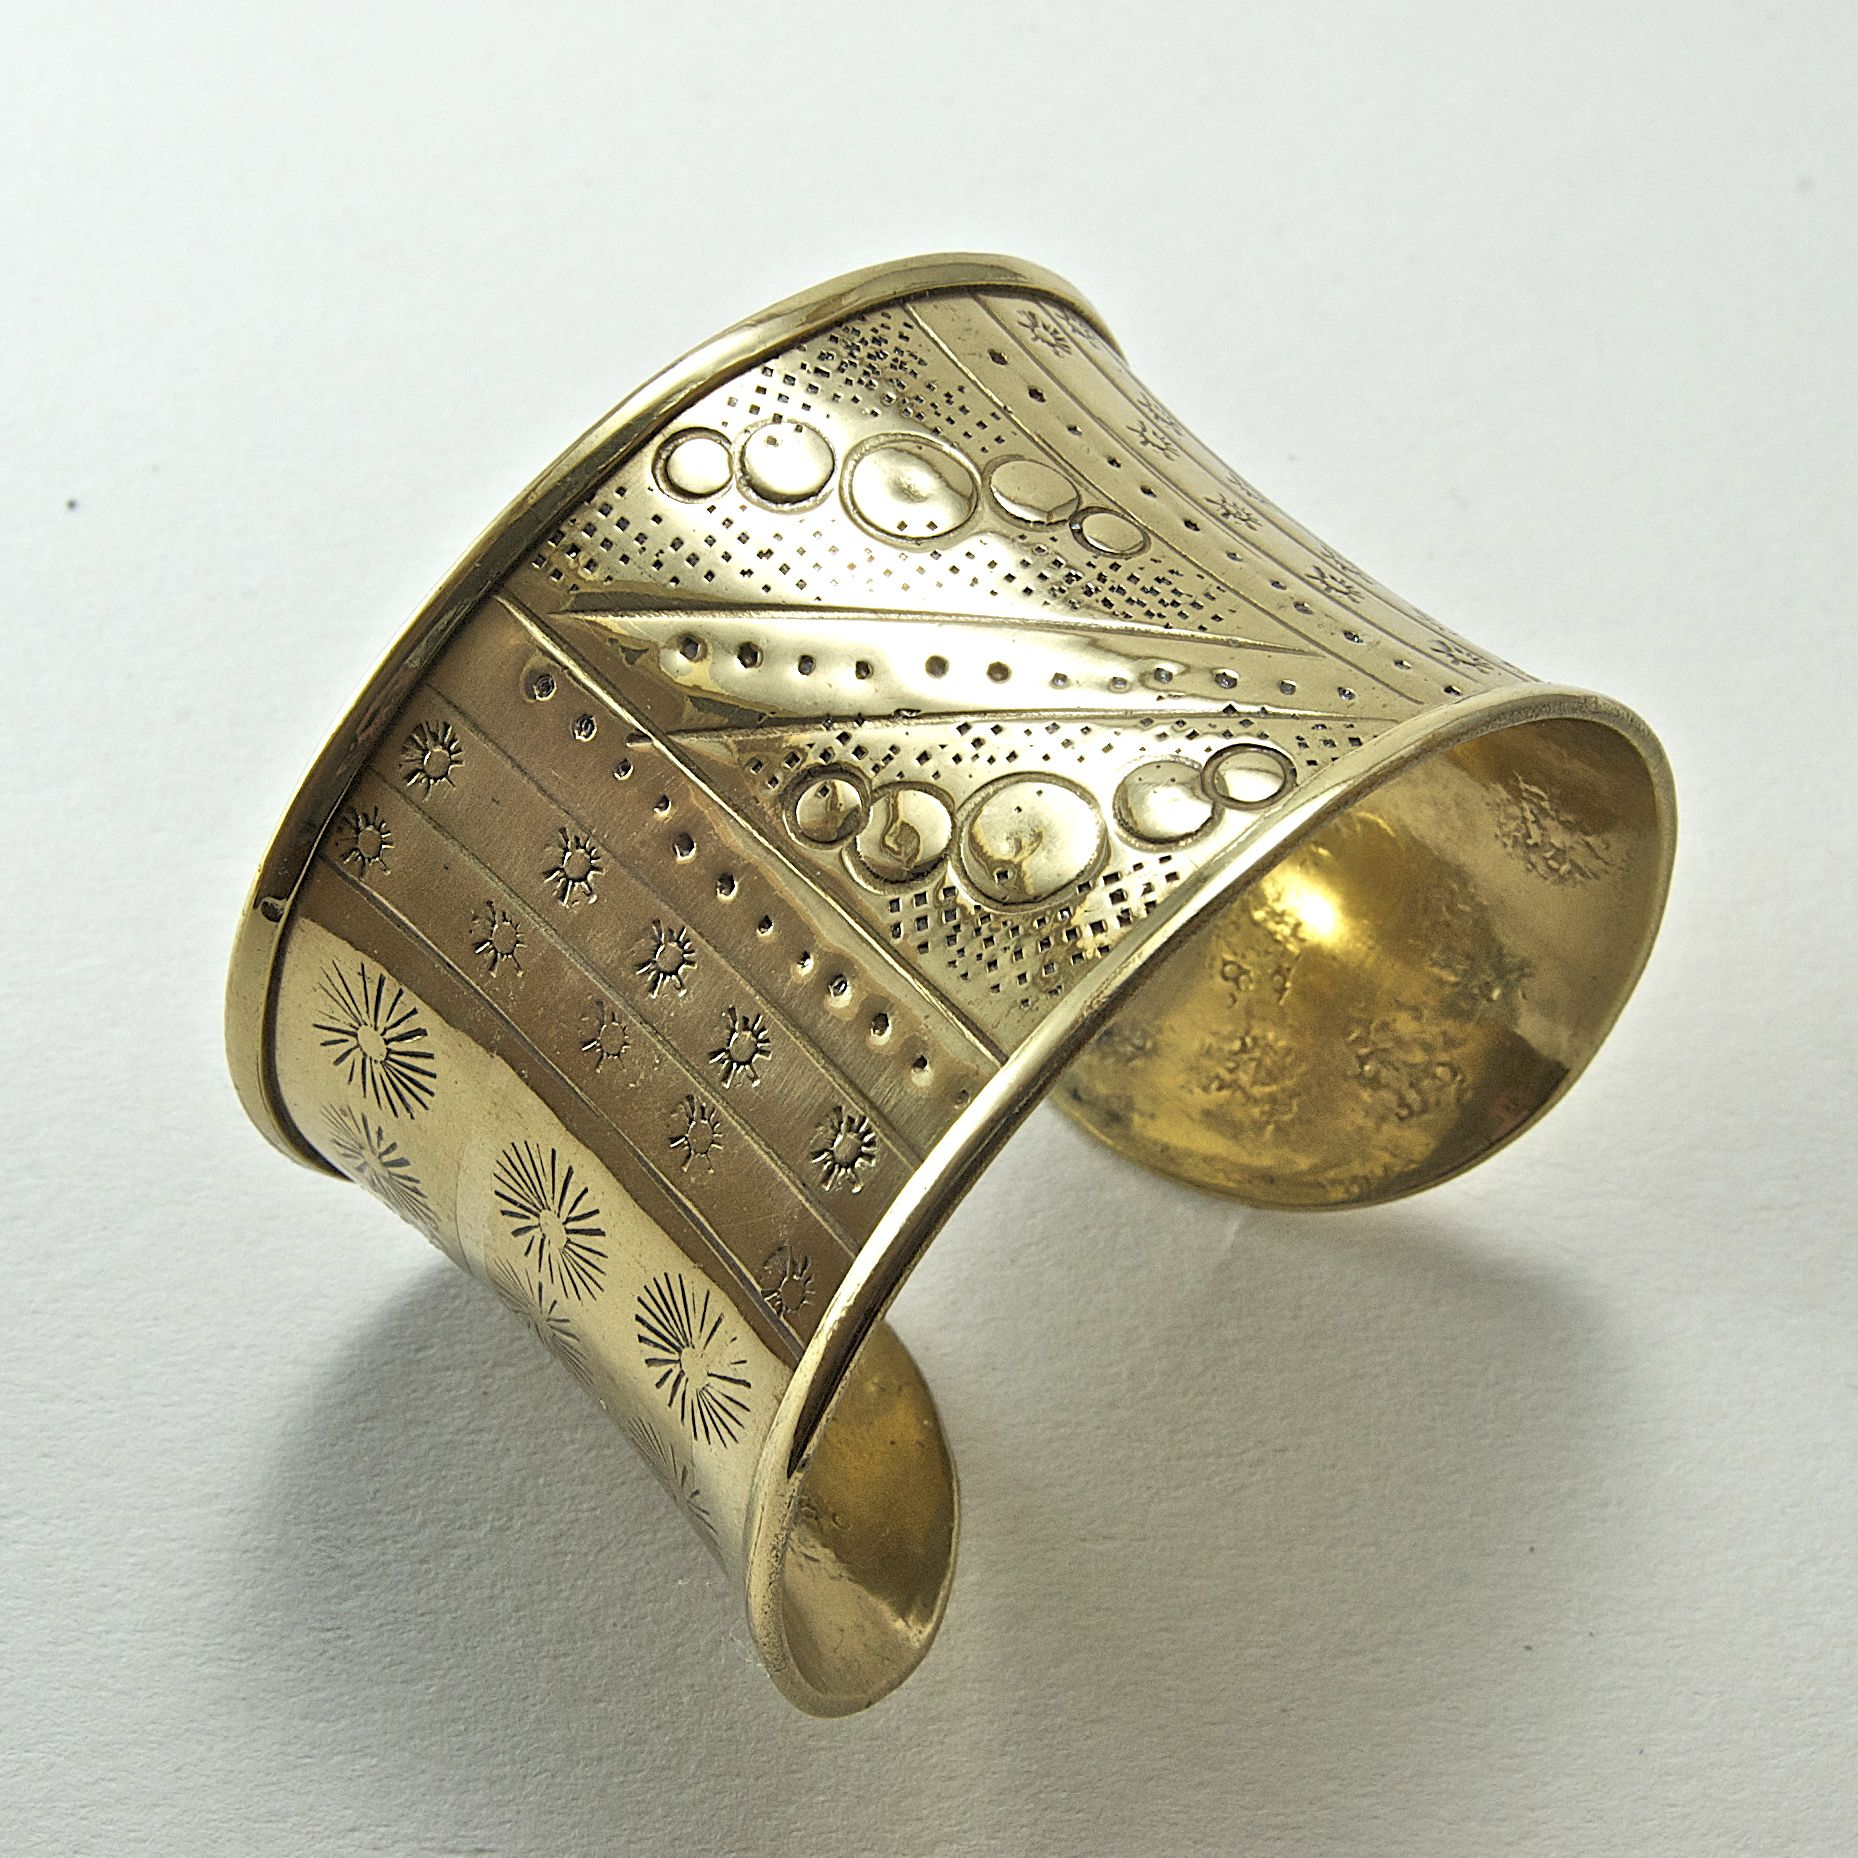 46mm Wide Polished Etched Stamped Brass Cuff, 1 each